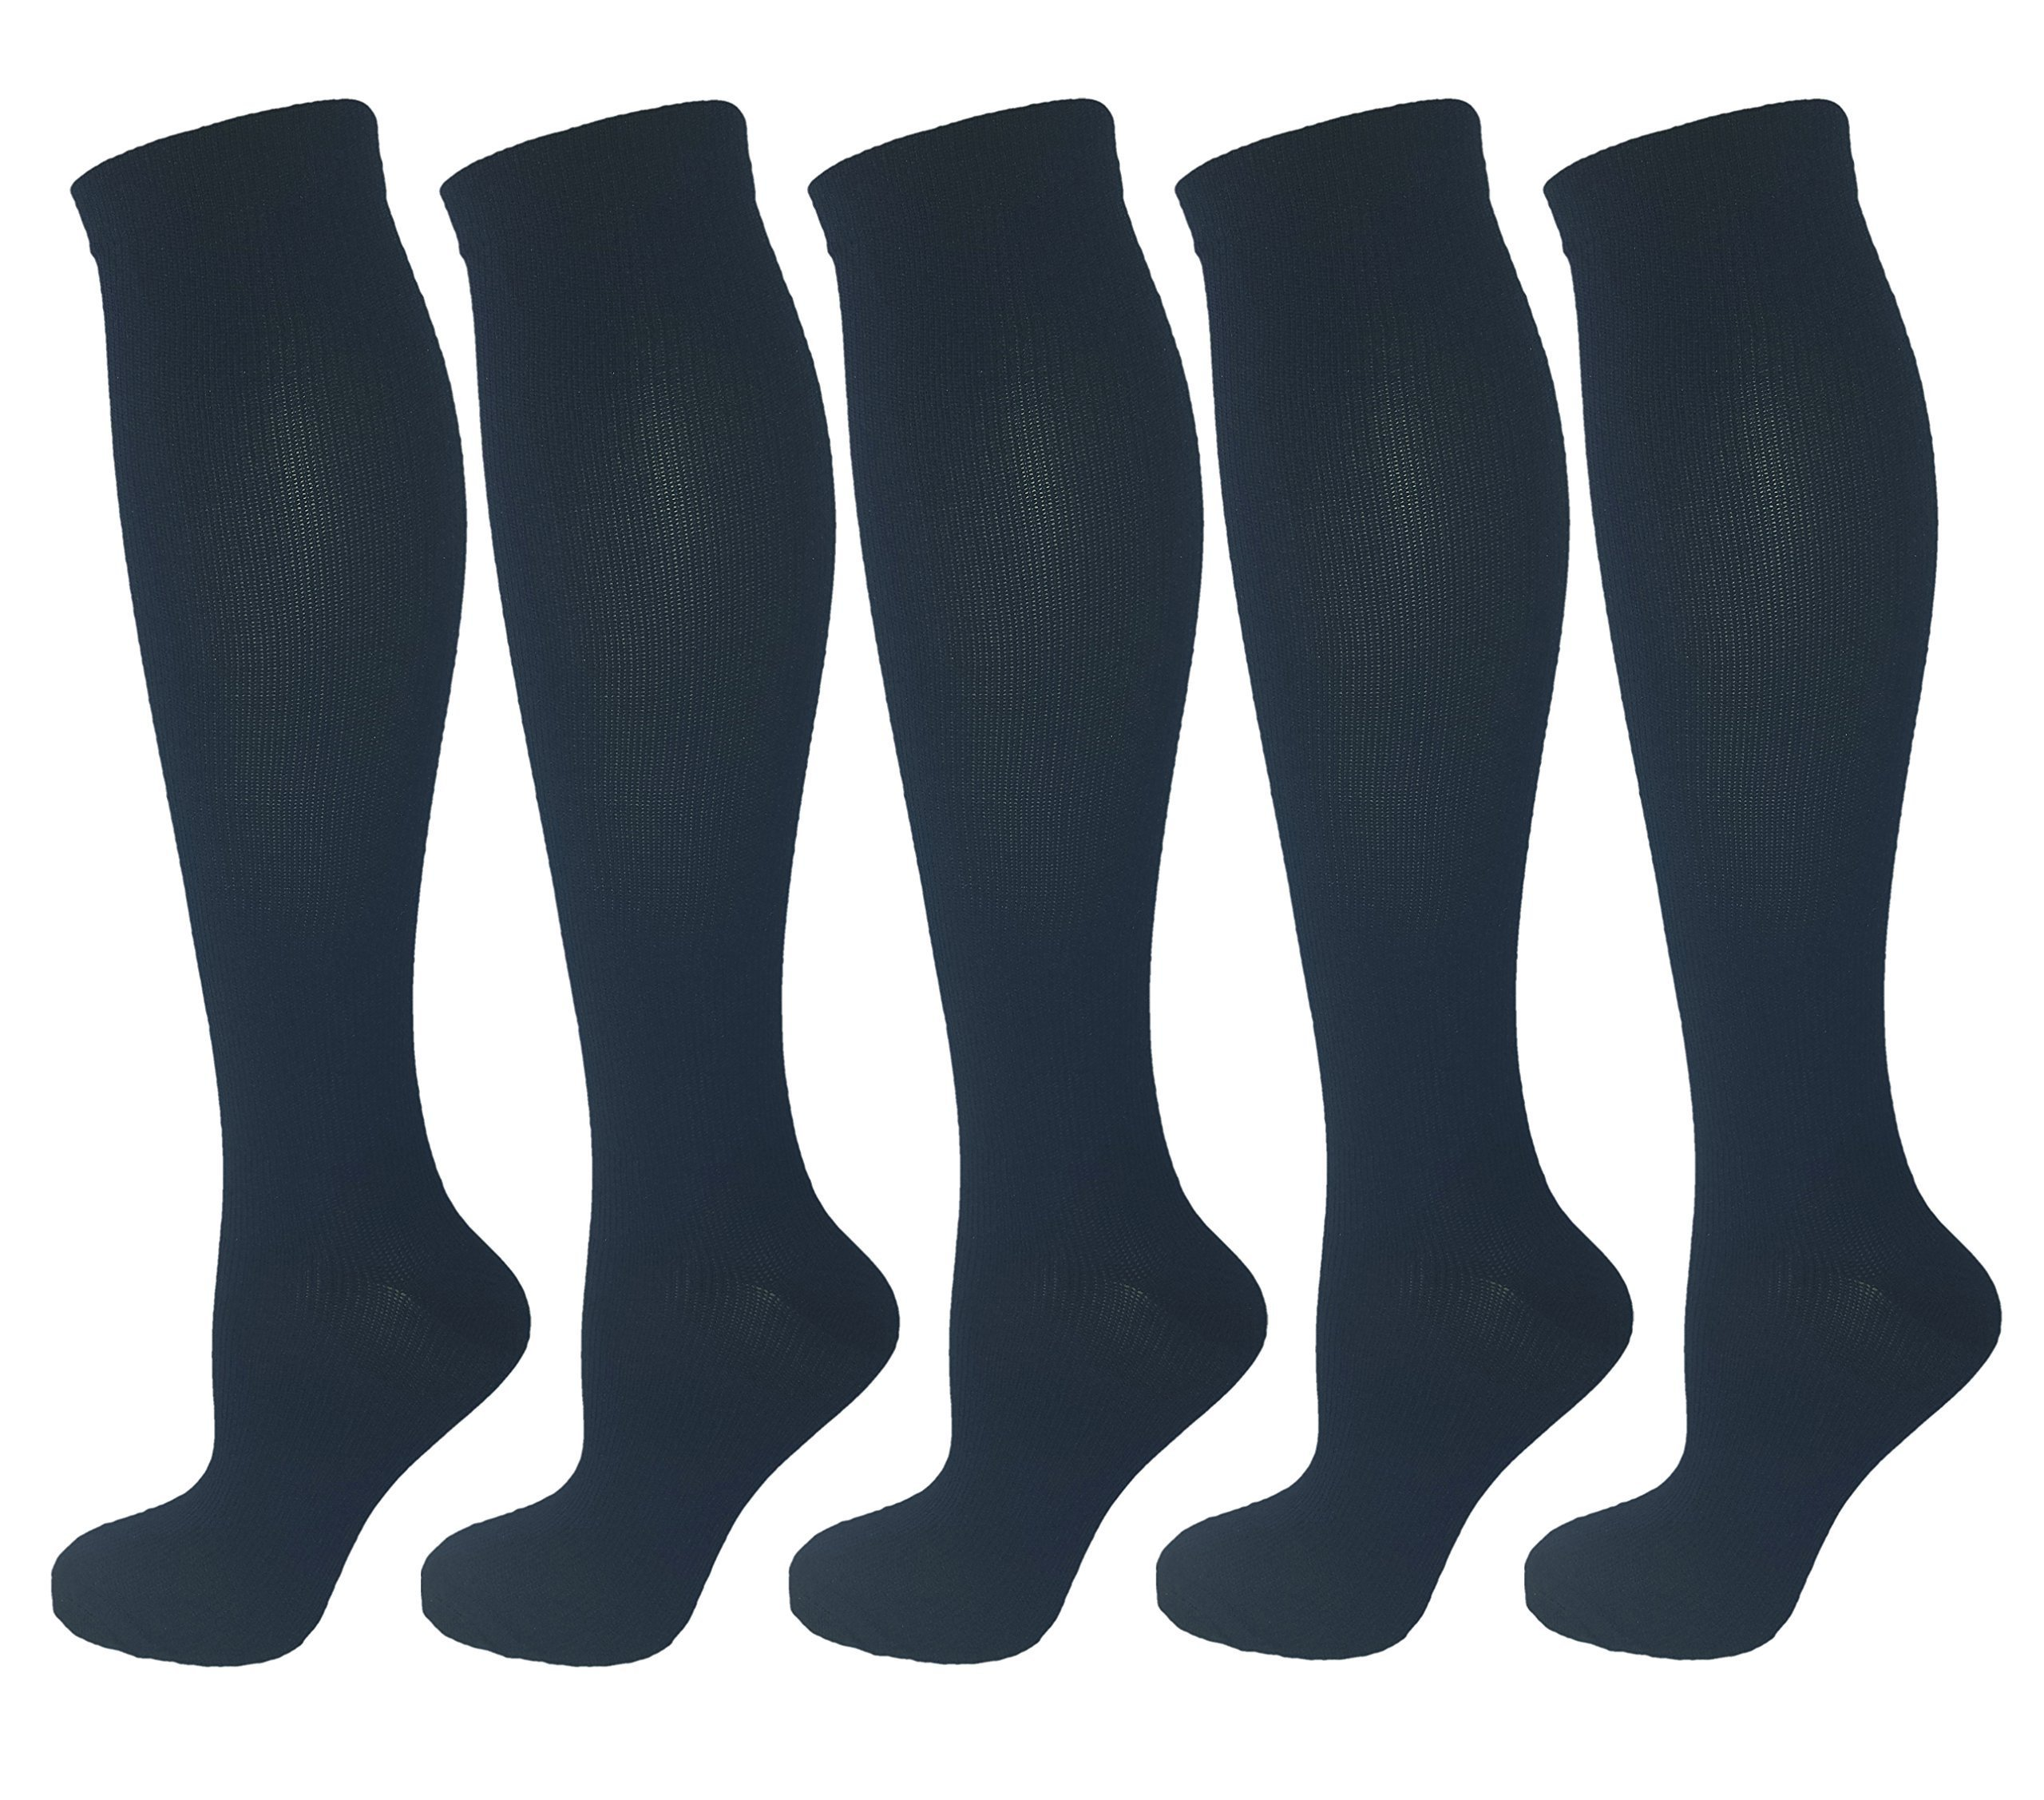 Ladies Moderate Graduated Compression Socks 15-20 mmHg. 5 Pair. Assorted Colors